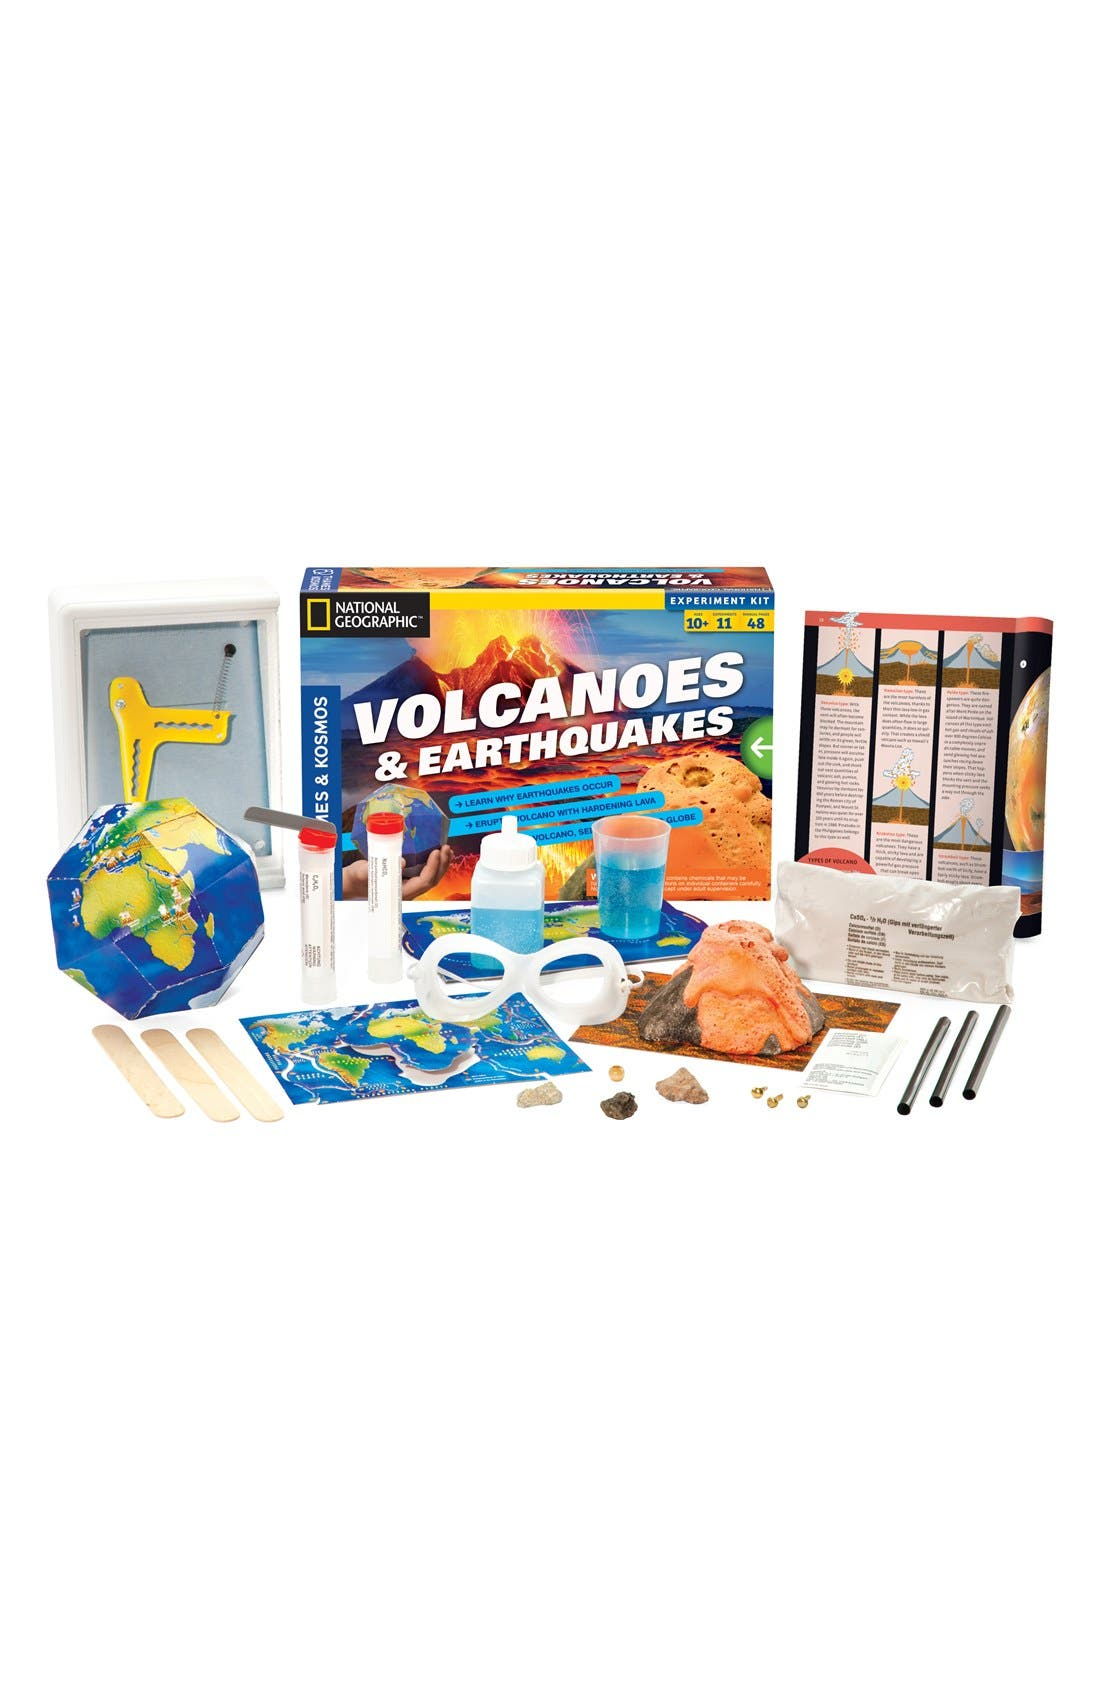 Alternate Image 1 Selected - Thames & Kosmos 'Volcanoes & Earthquakes' Experiment Kit